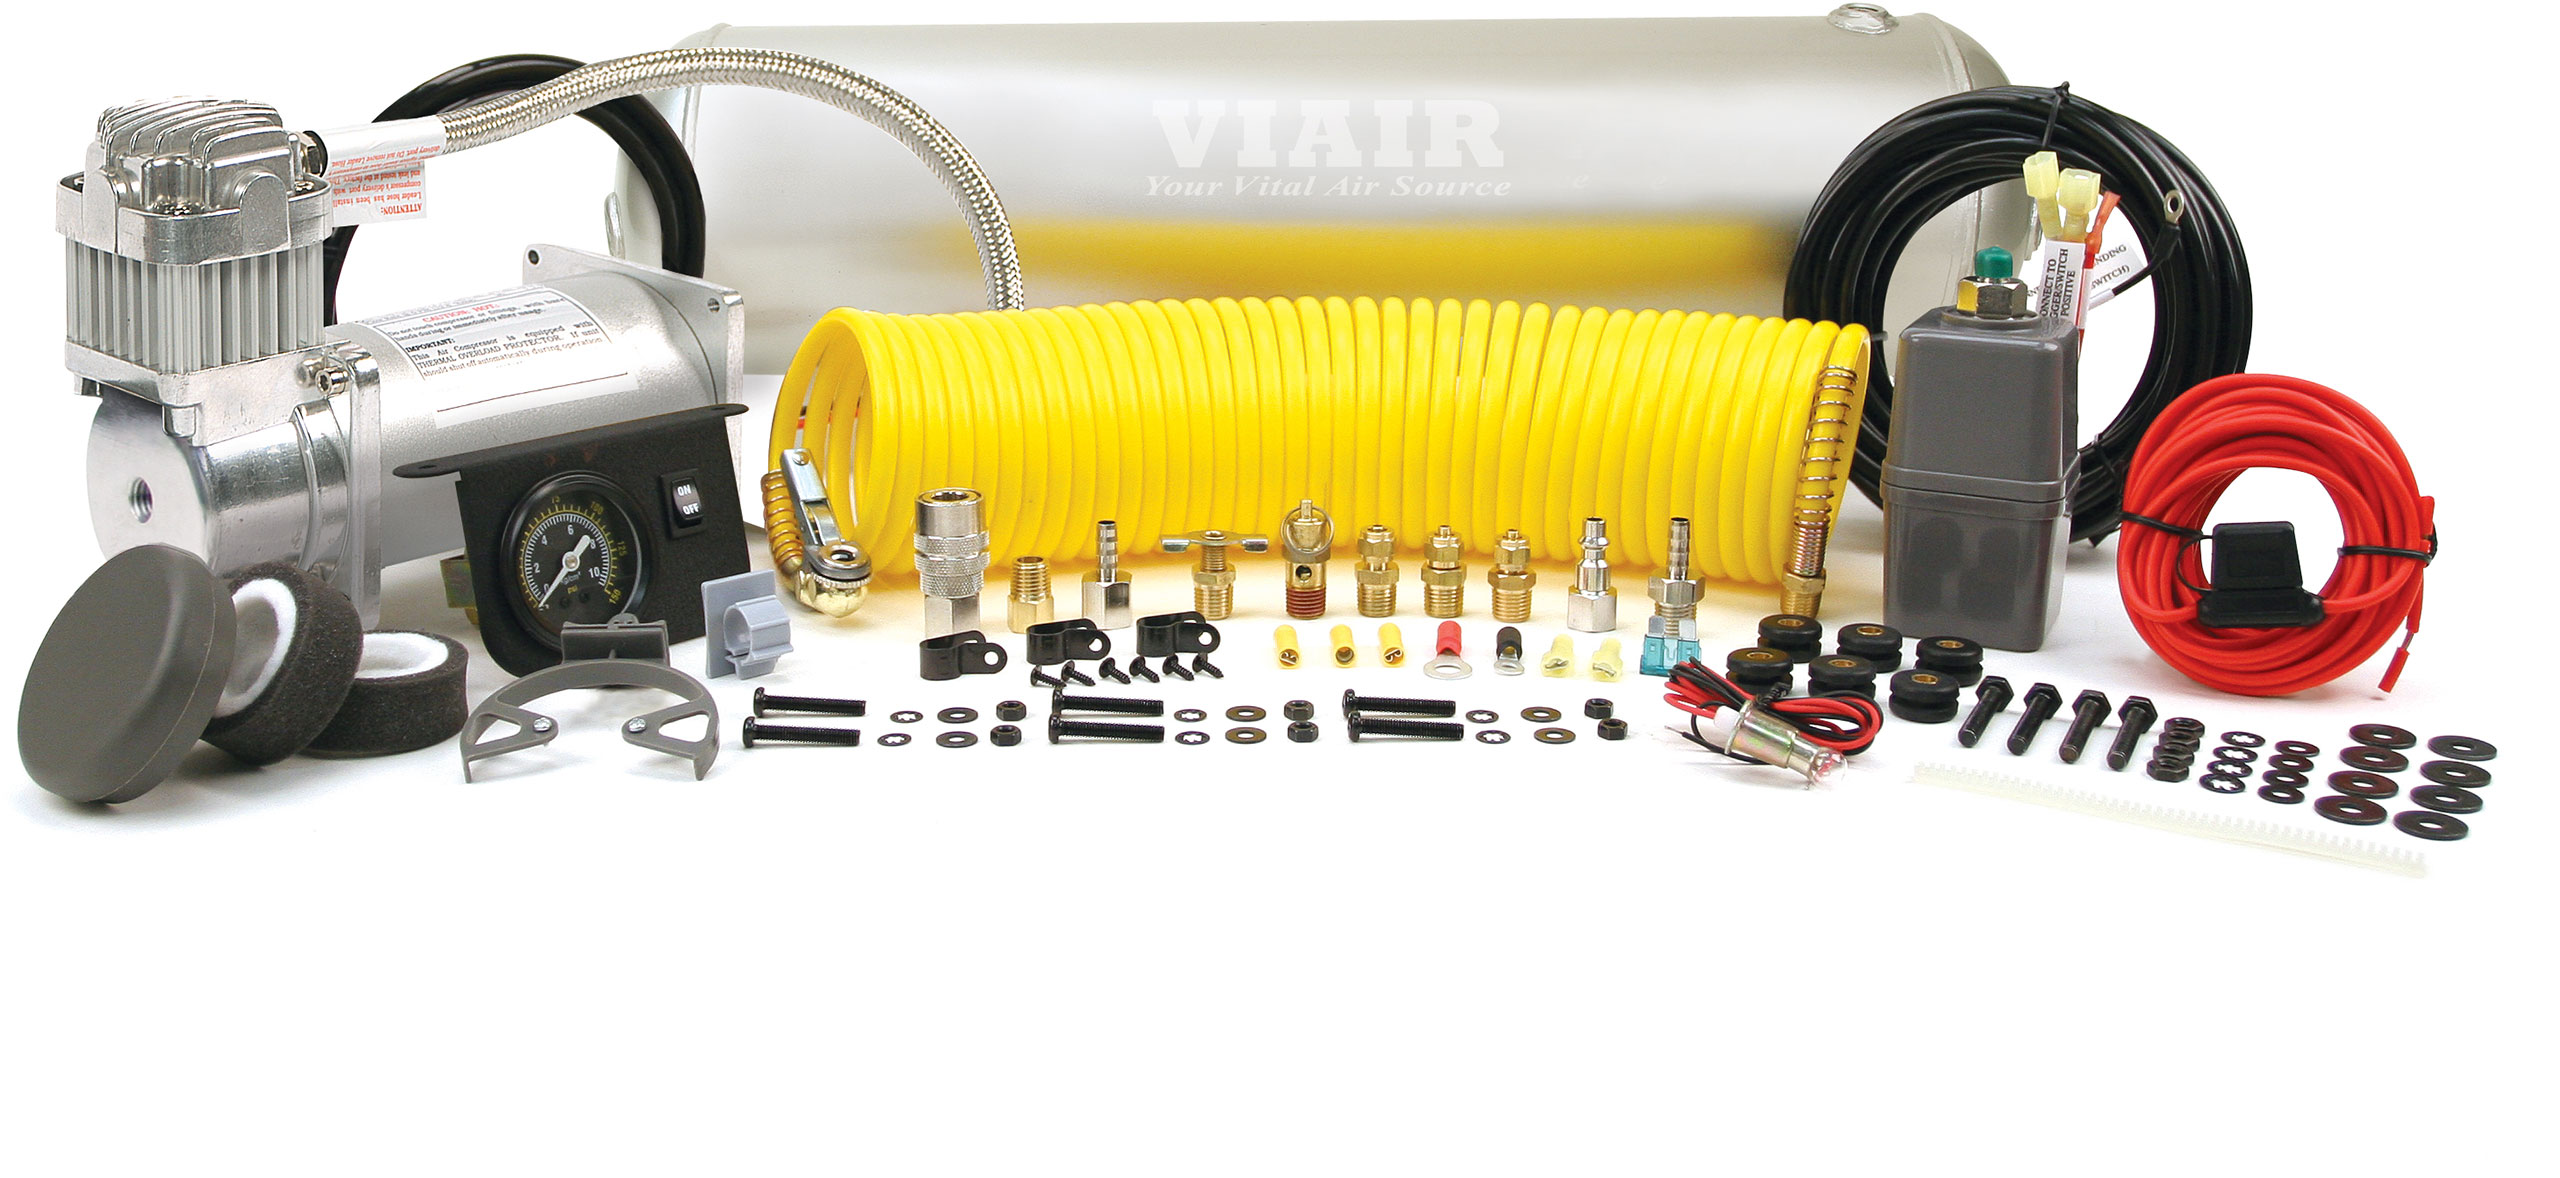 viair pressure switch relay wiring diagram wiring diagram viair heavy duty onboard air system